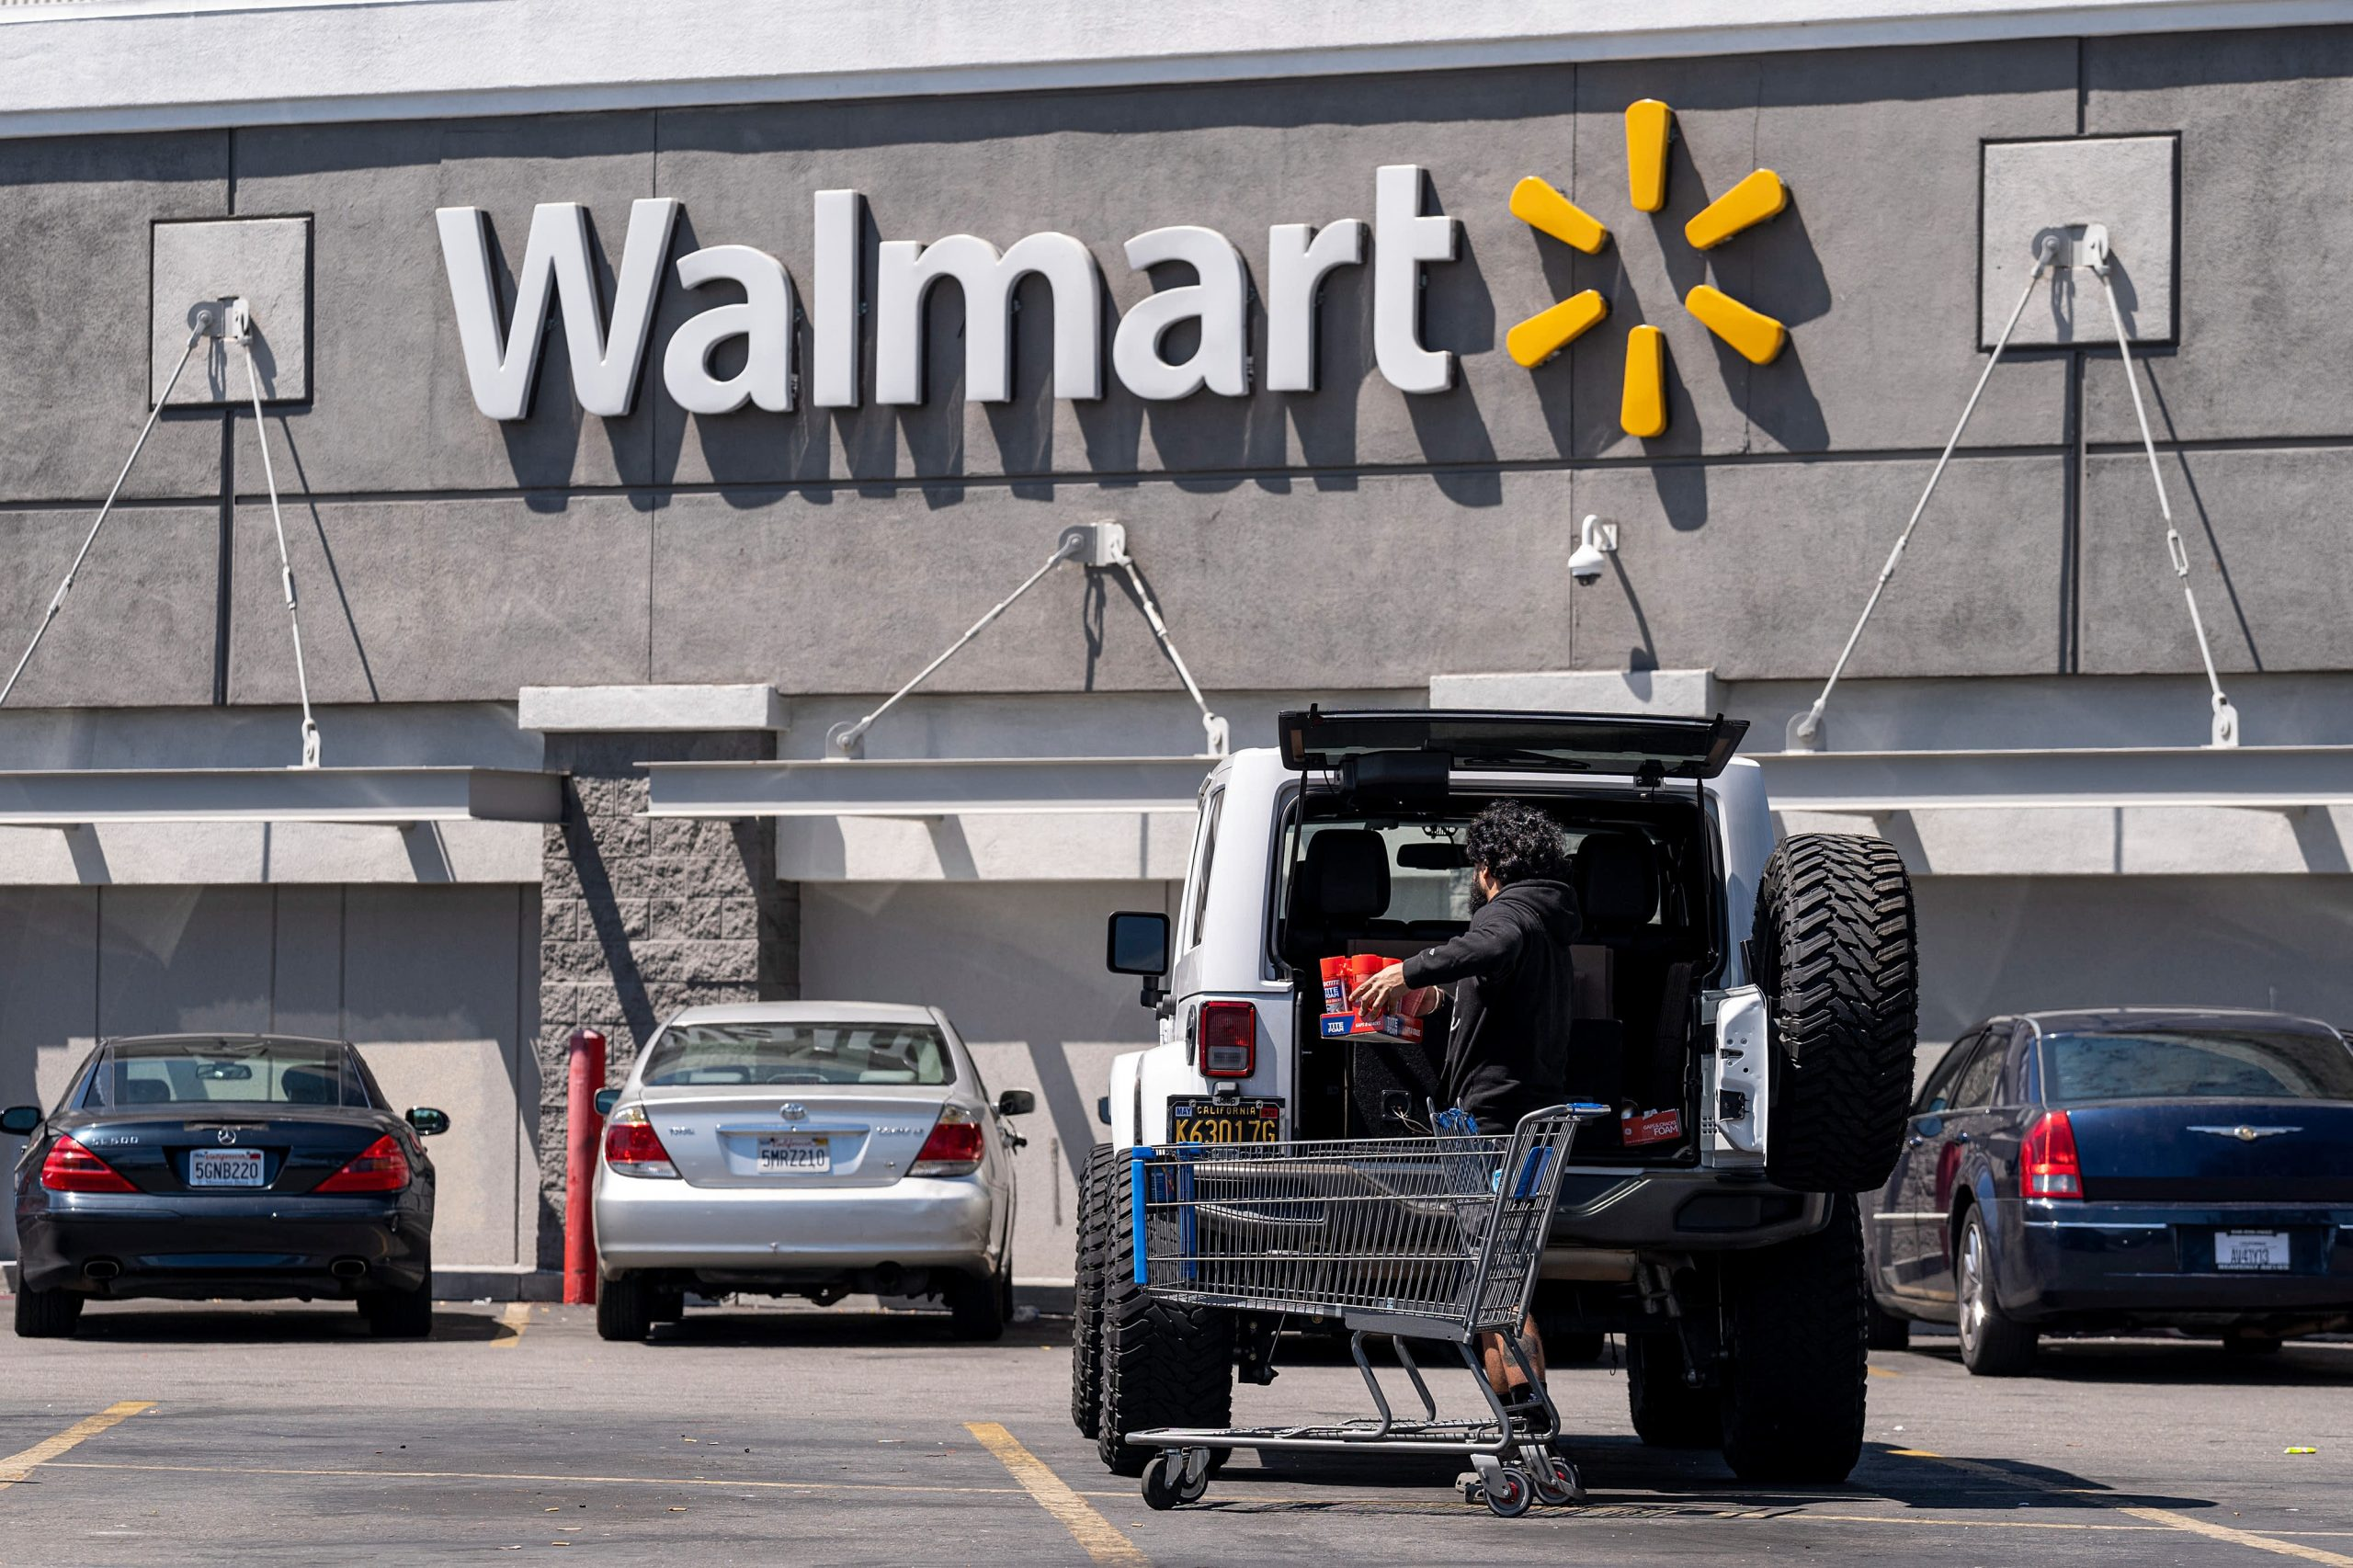 Walmart aims to hire 20,000 supply chain employees as it ramps up for the holiday season